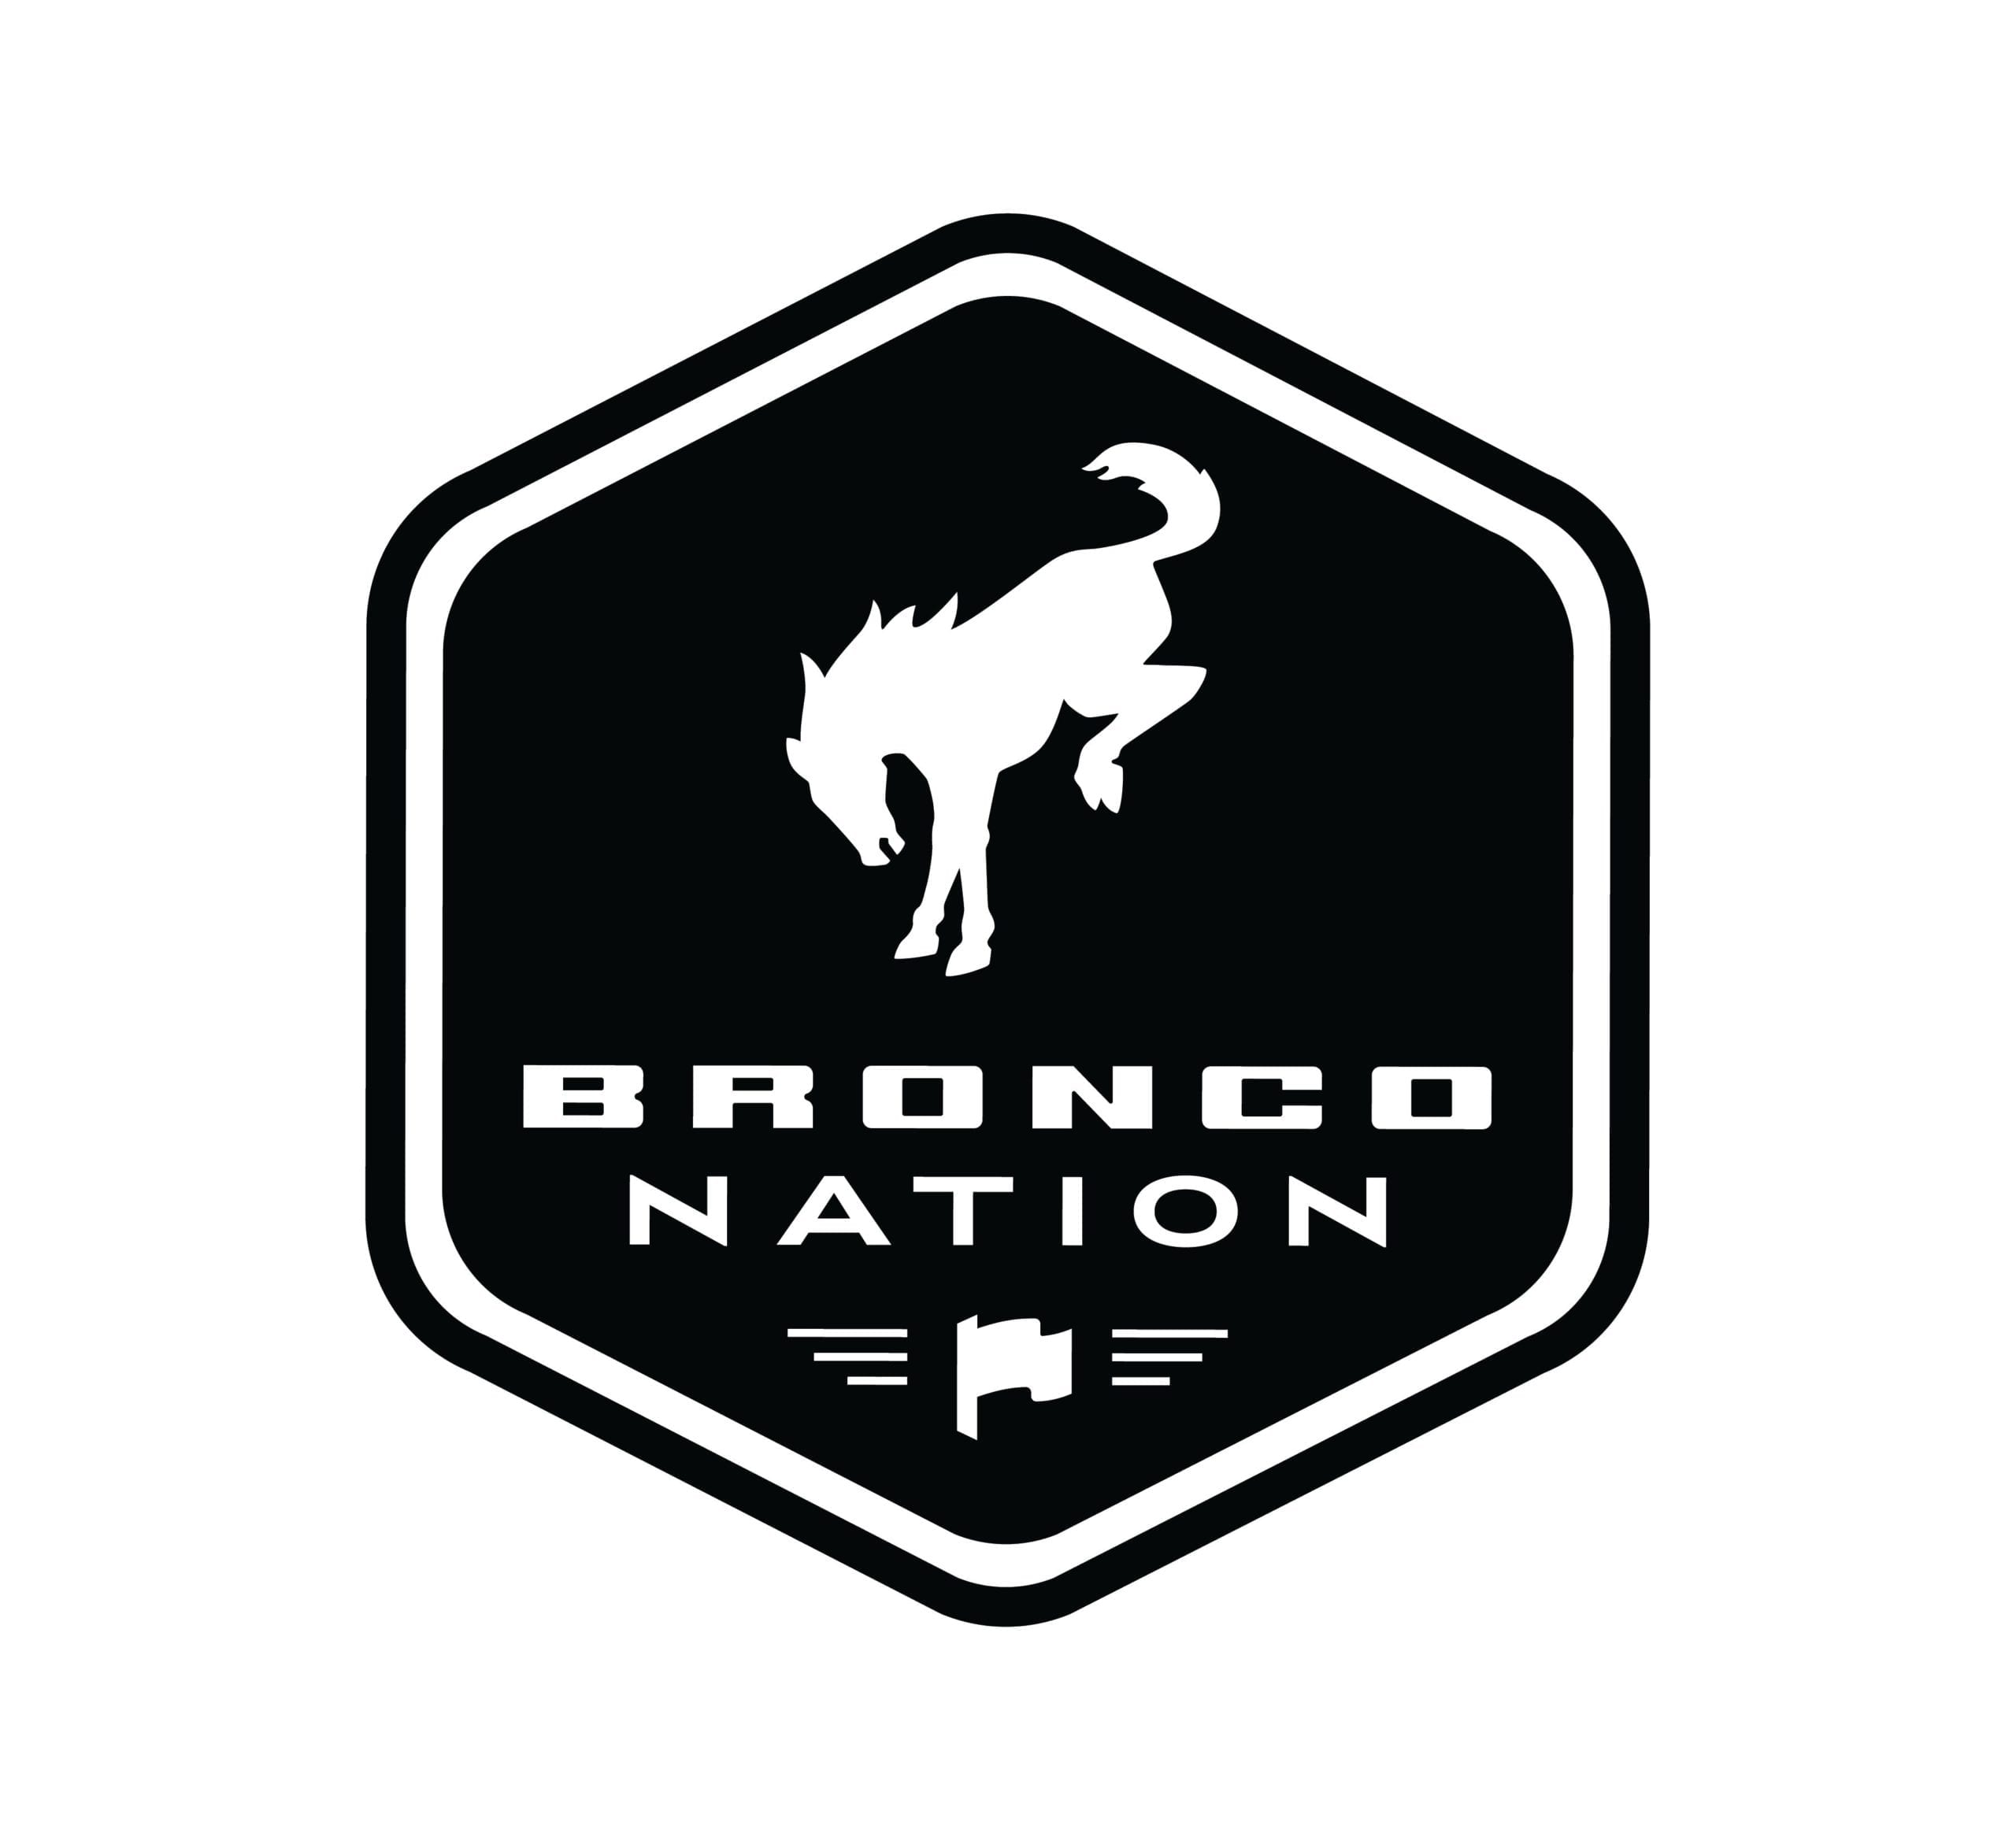 Bronco Nation Branding